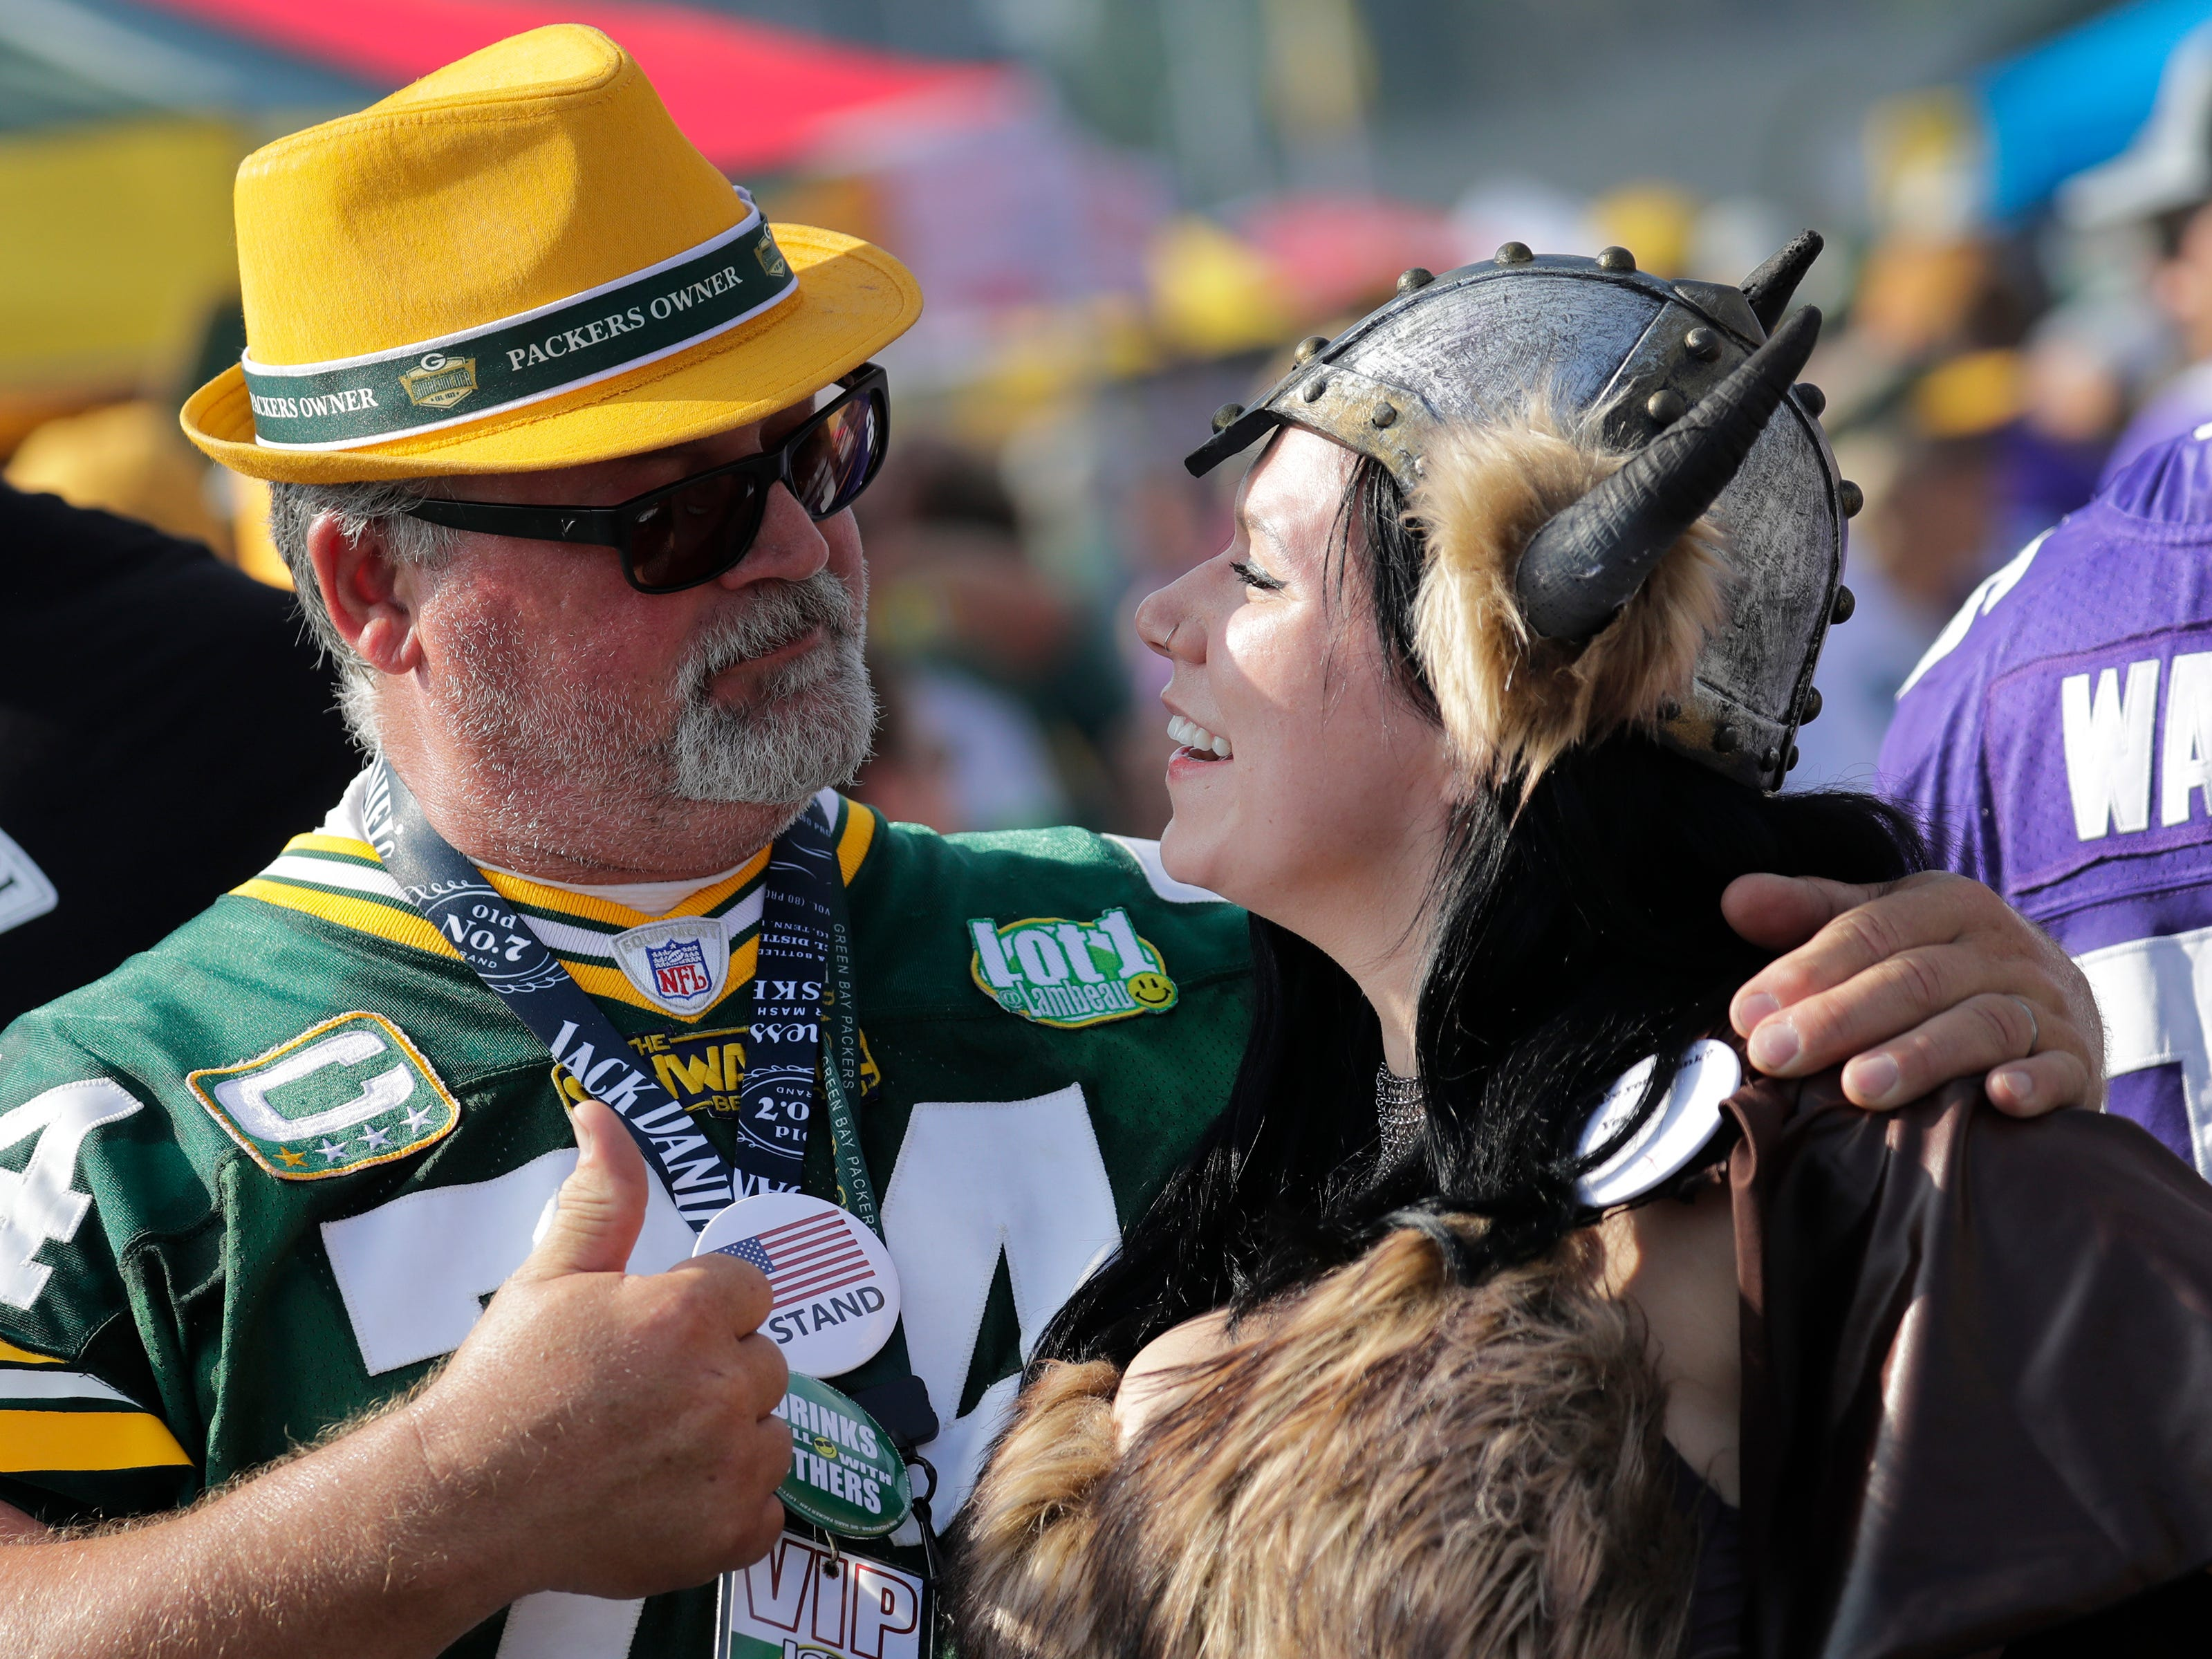 Scott Schwartz, left, of Pulaski, WI, and  Amber Reynolds of Minneapolis, MN, hang out prior to the Green Bay Packers playing against the Minnesota Vikings Sunday, Sept. 16, 2018, at Lambeau Field in Green Bay, Wis.